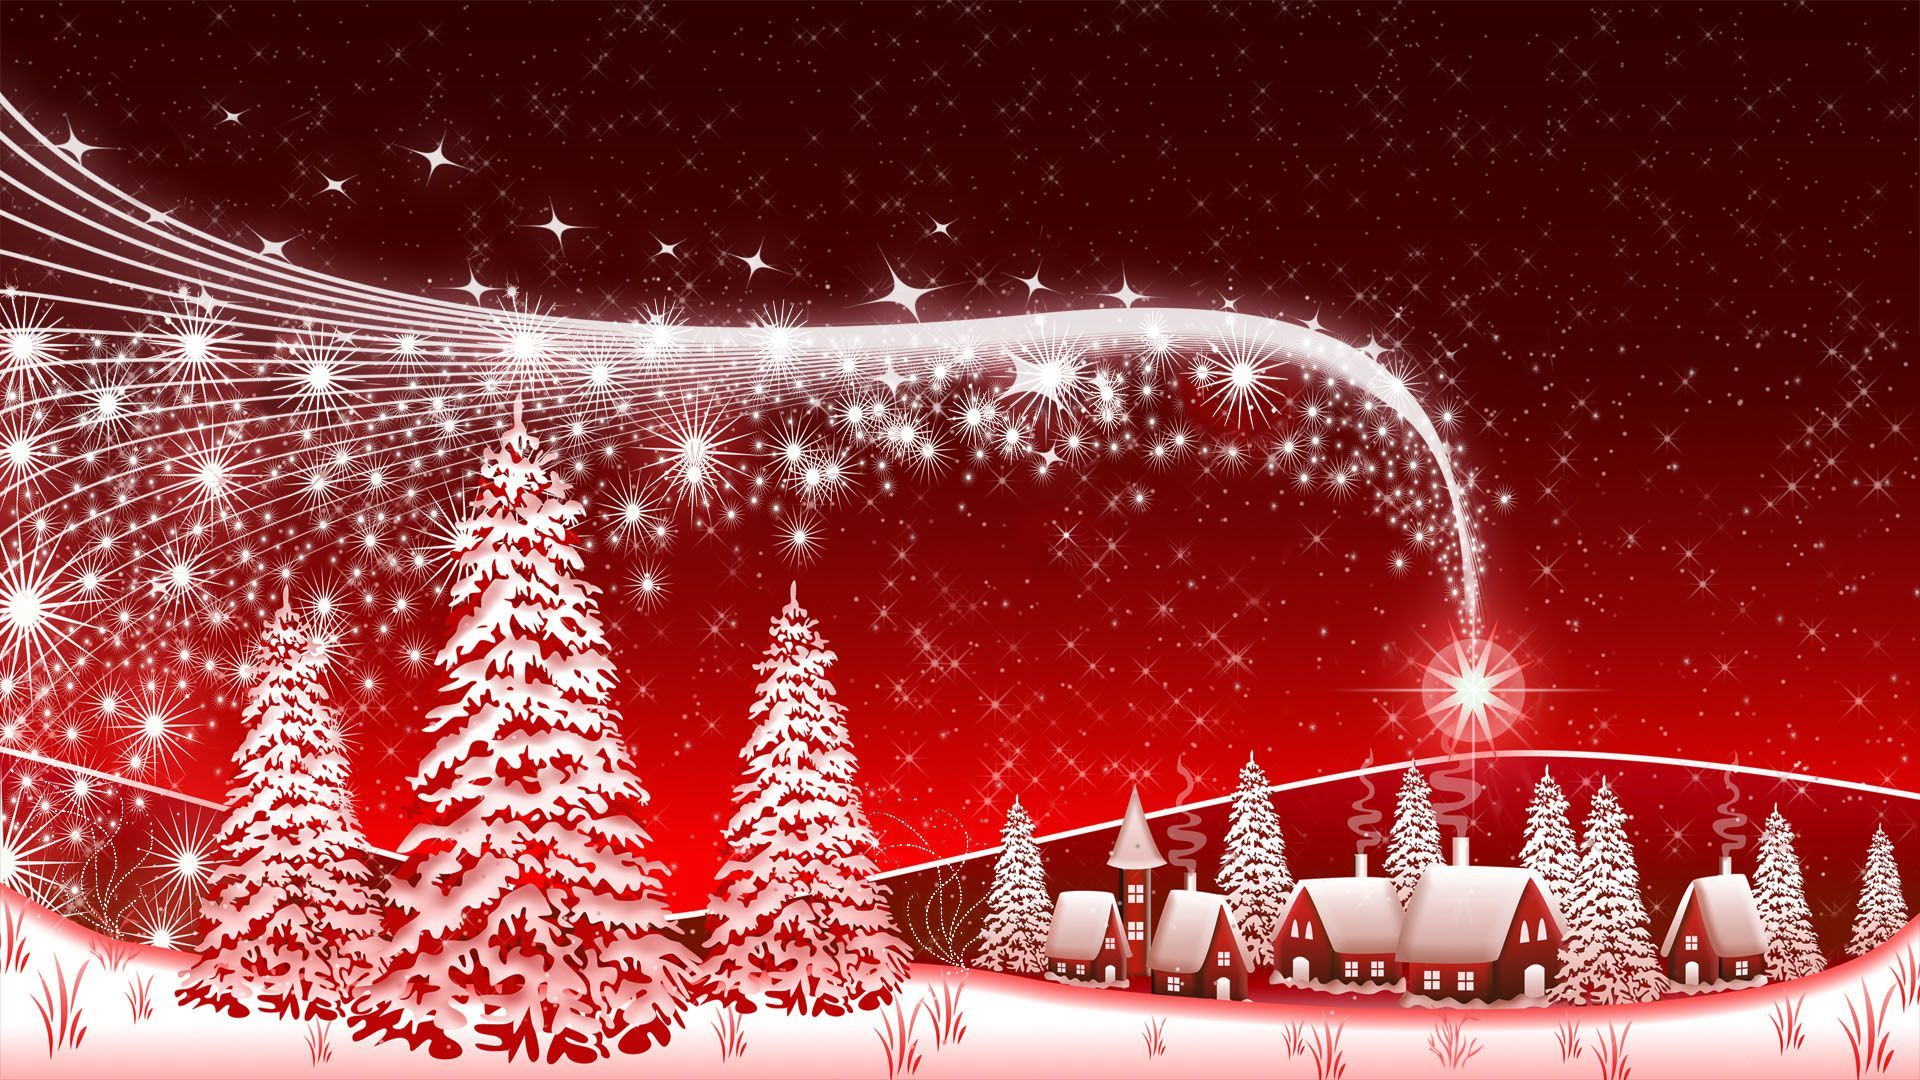 Christmas Winter Backgrounds - Wallpaper Cave